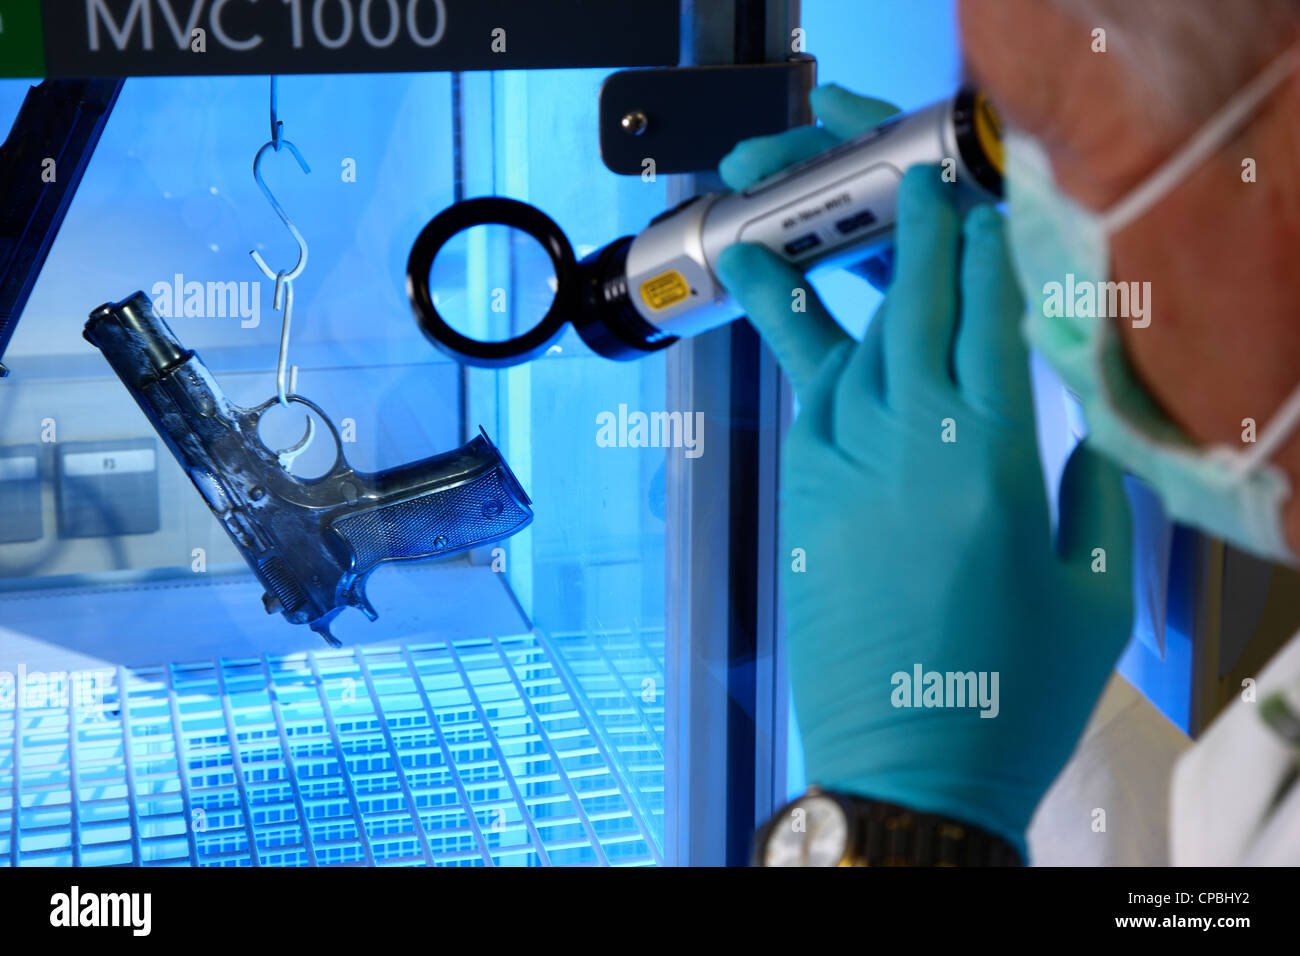 Police. State Office of Criminal Investigations. Crime scene investigations. Crime lab. Technical investigation - Stock Image